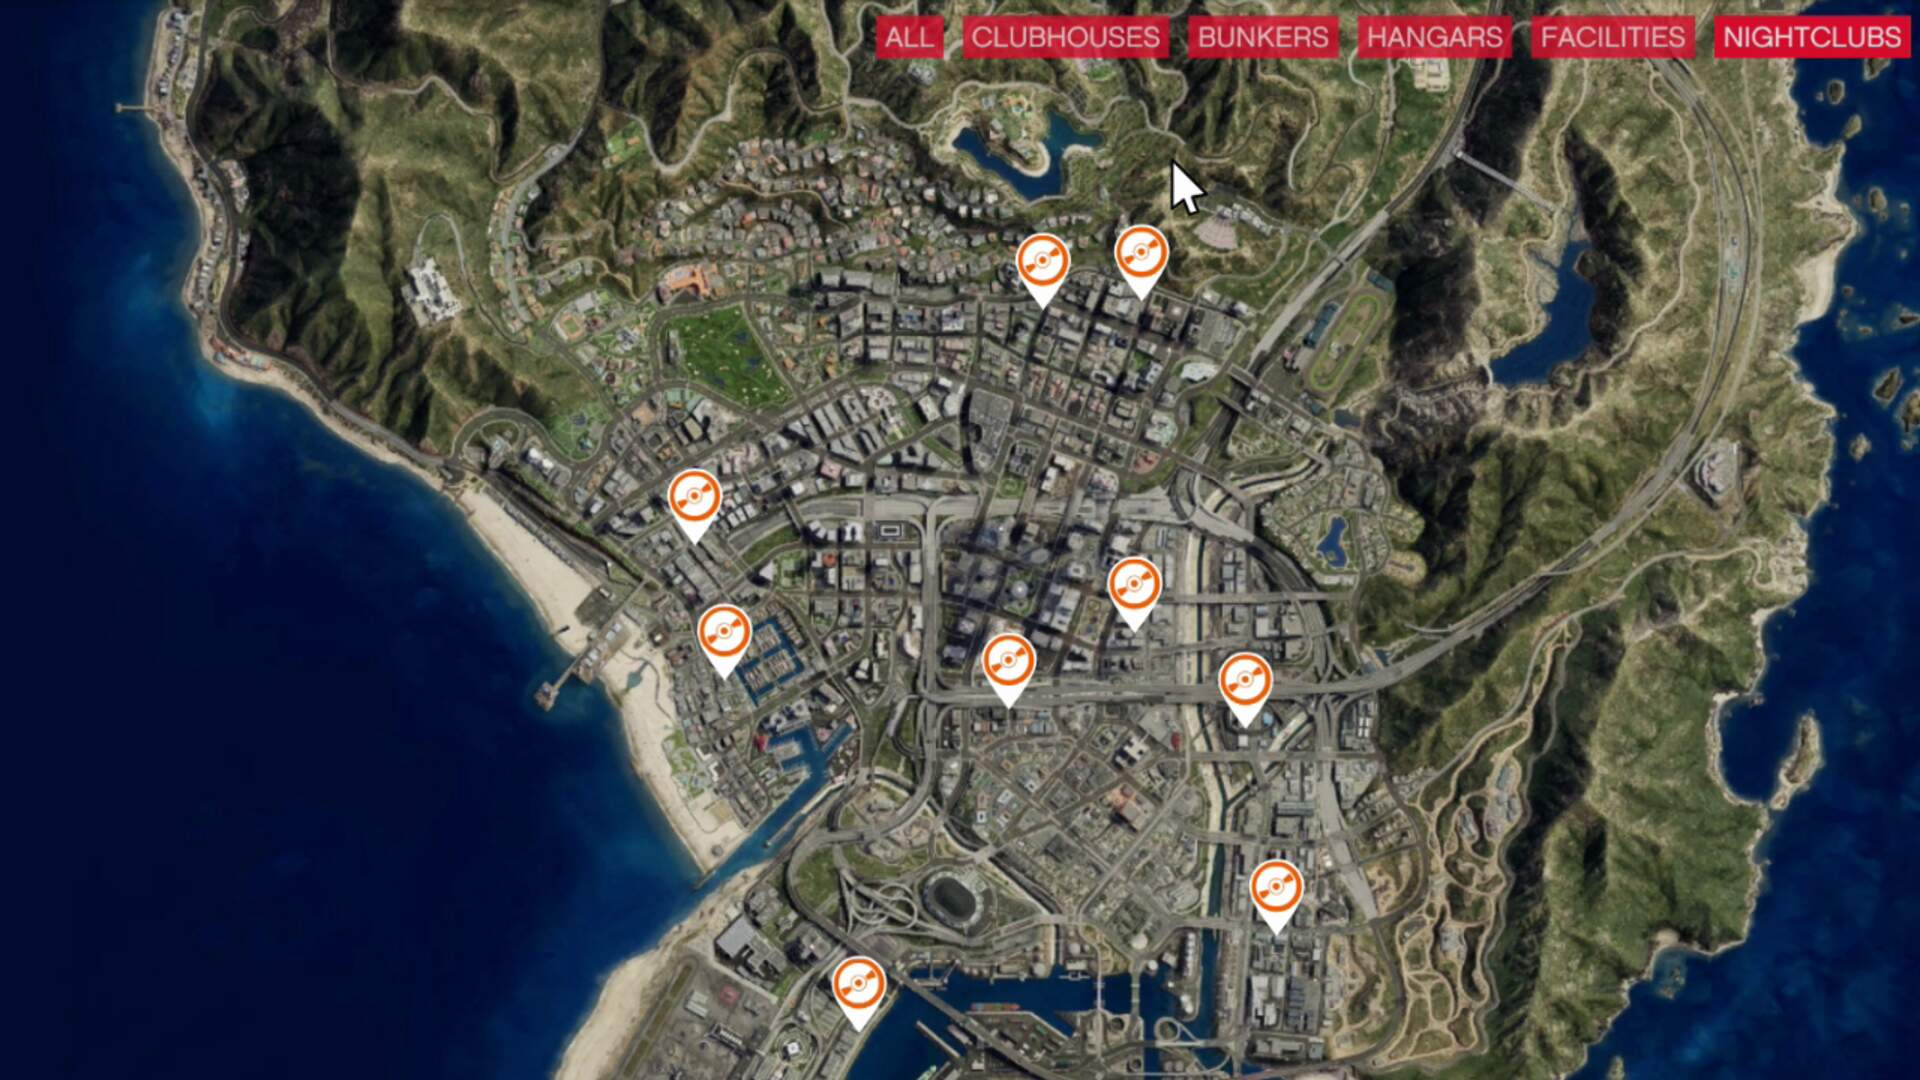 GTA After Hours Nightclubs Guide - Names, Locations, Prices, Best Nightclub